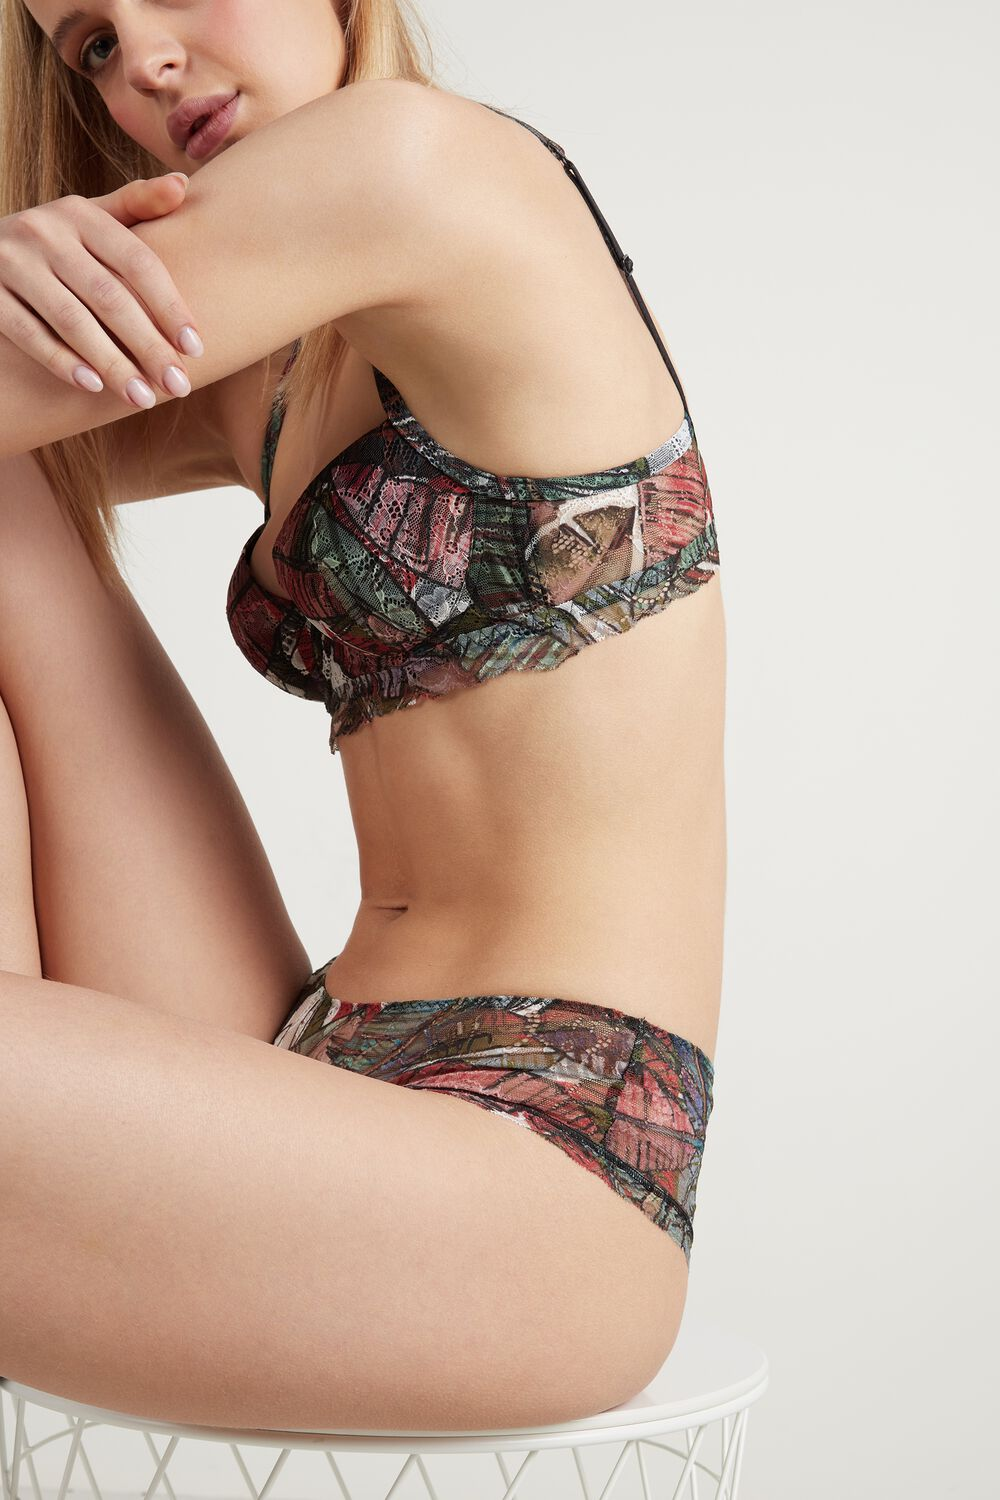 Cuba Libre French Knickers